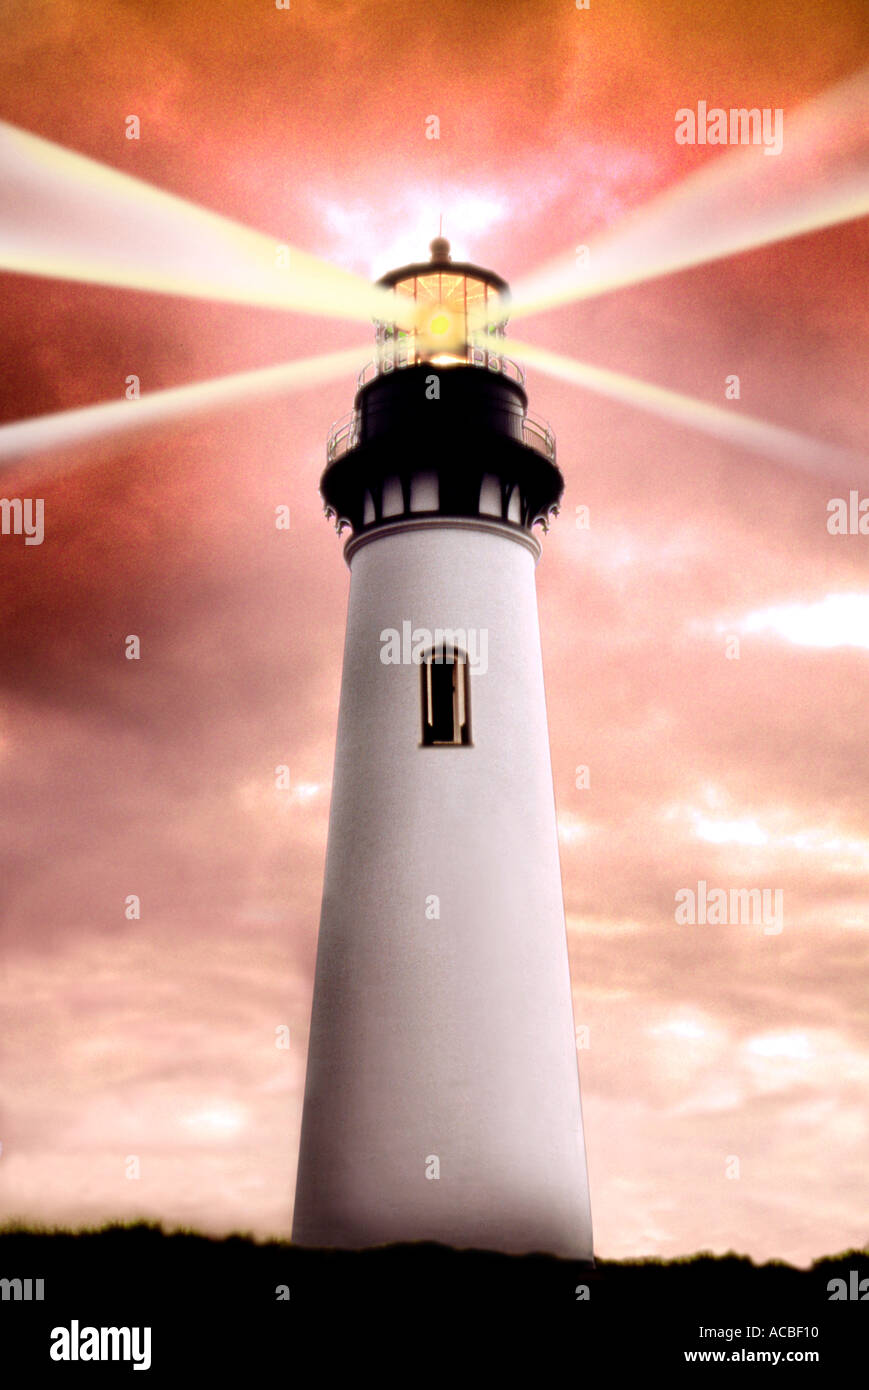 Solitary lighthouse with brightly lit lamp and light beams - Stock Image